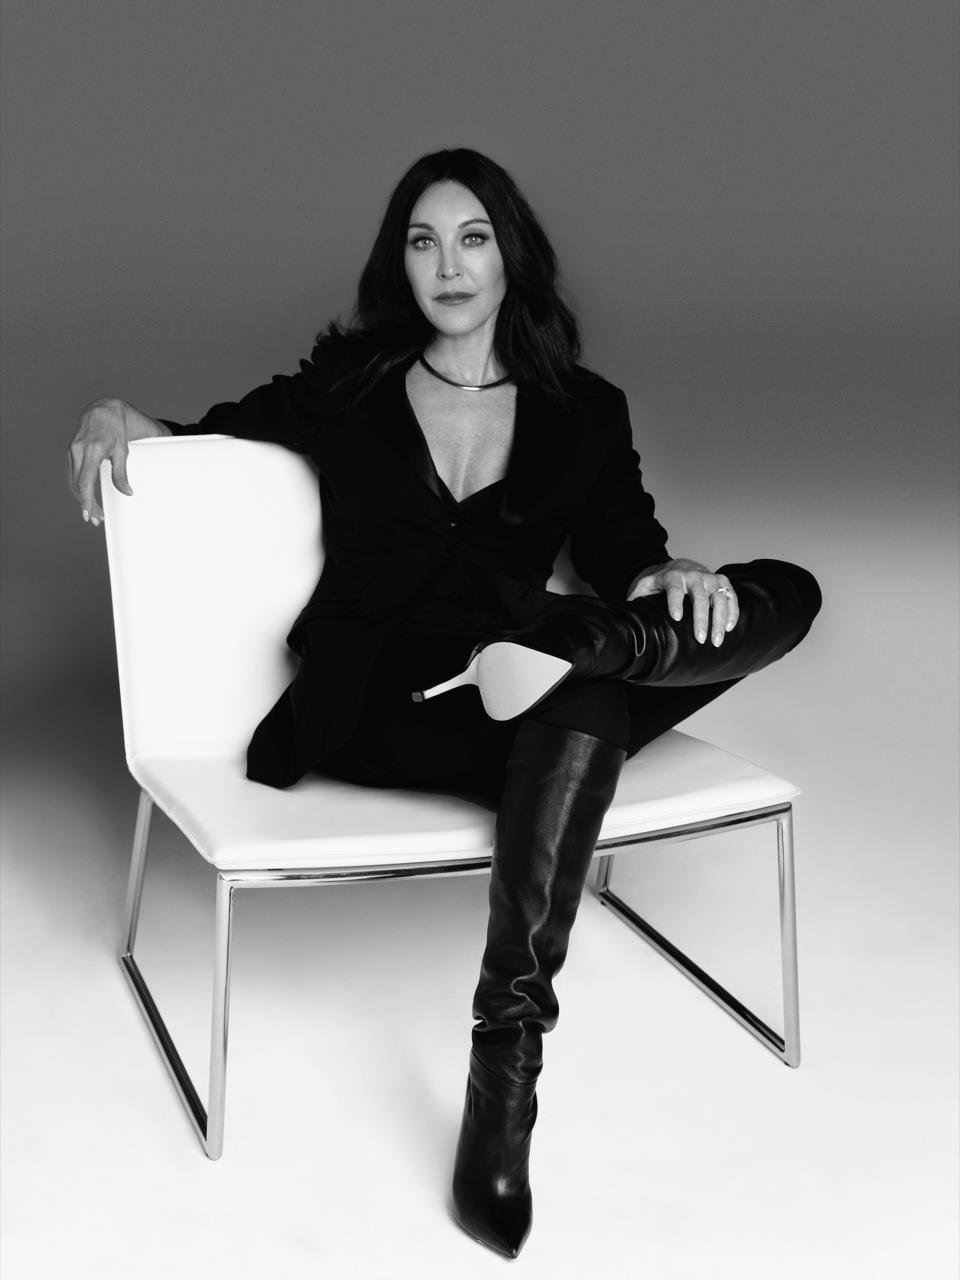 Shoe designer Tamara Mellon will discuss how to turn a passion into a career.